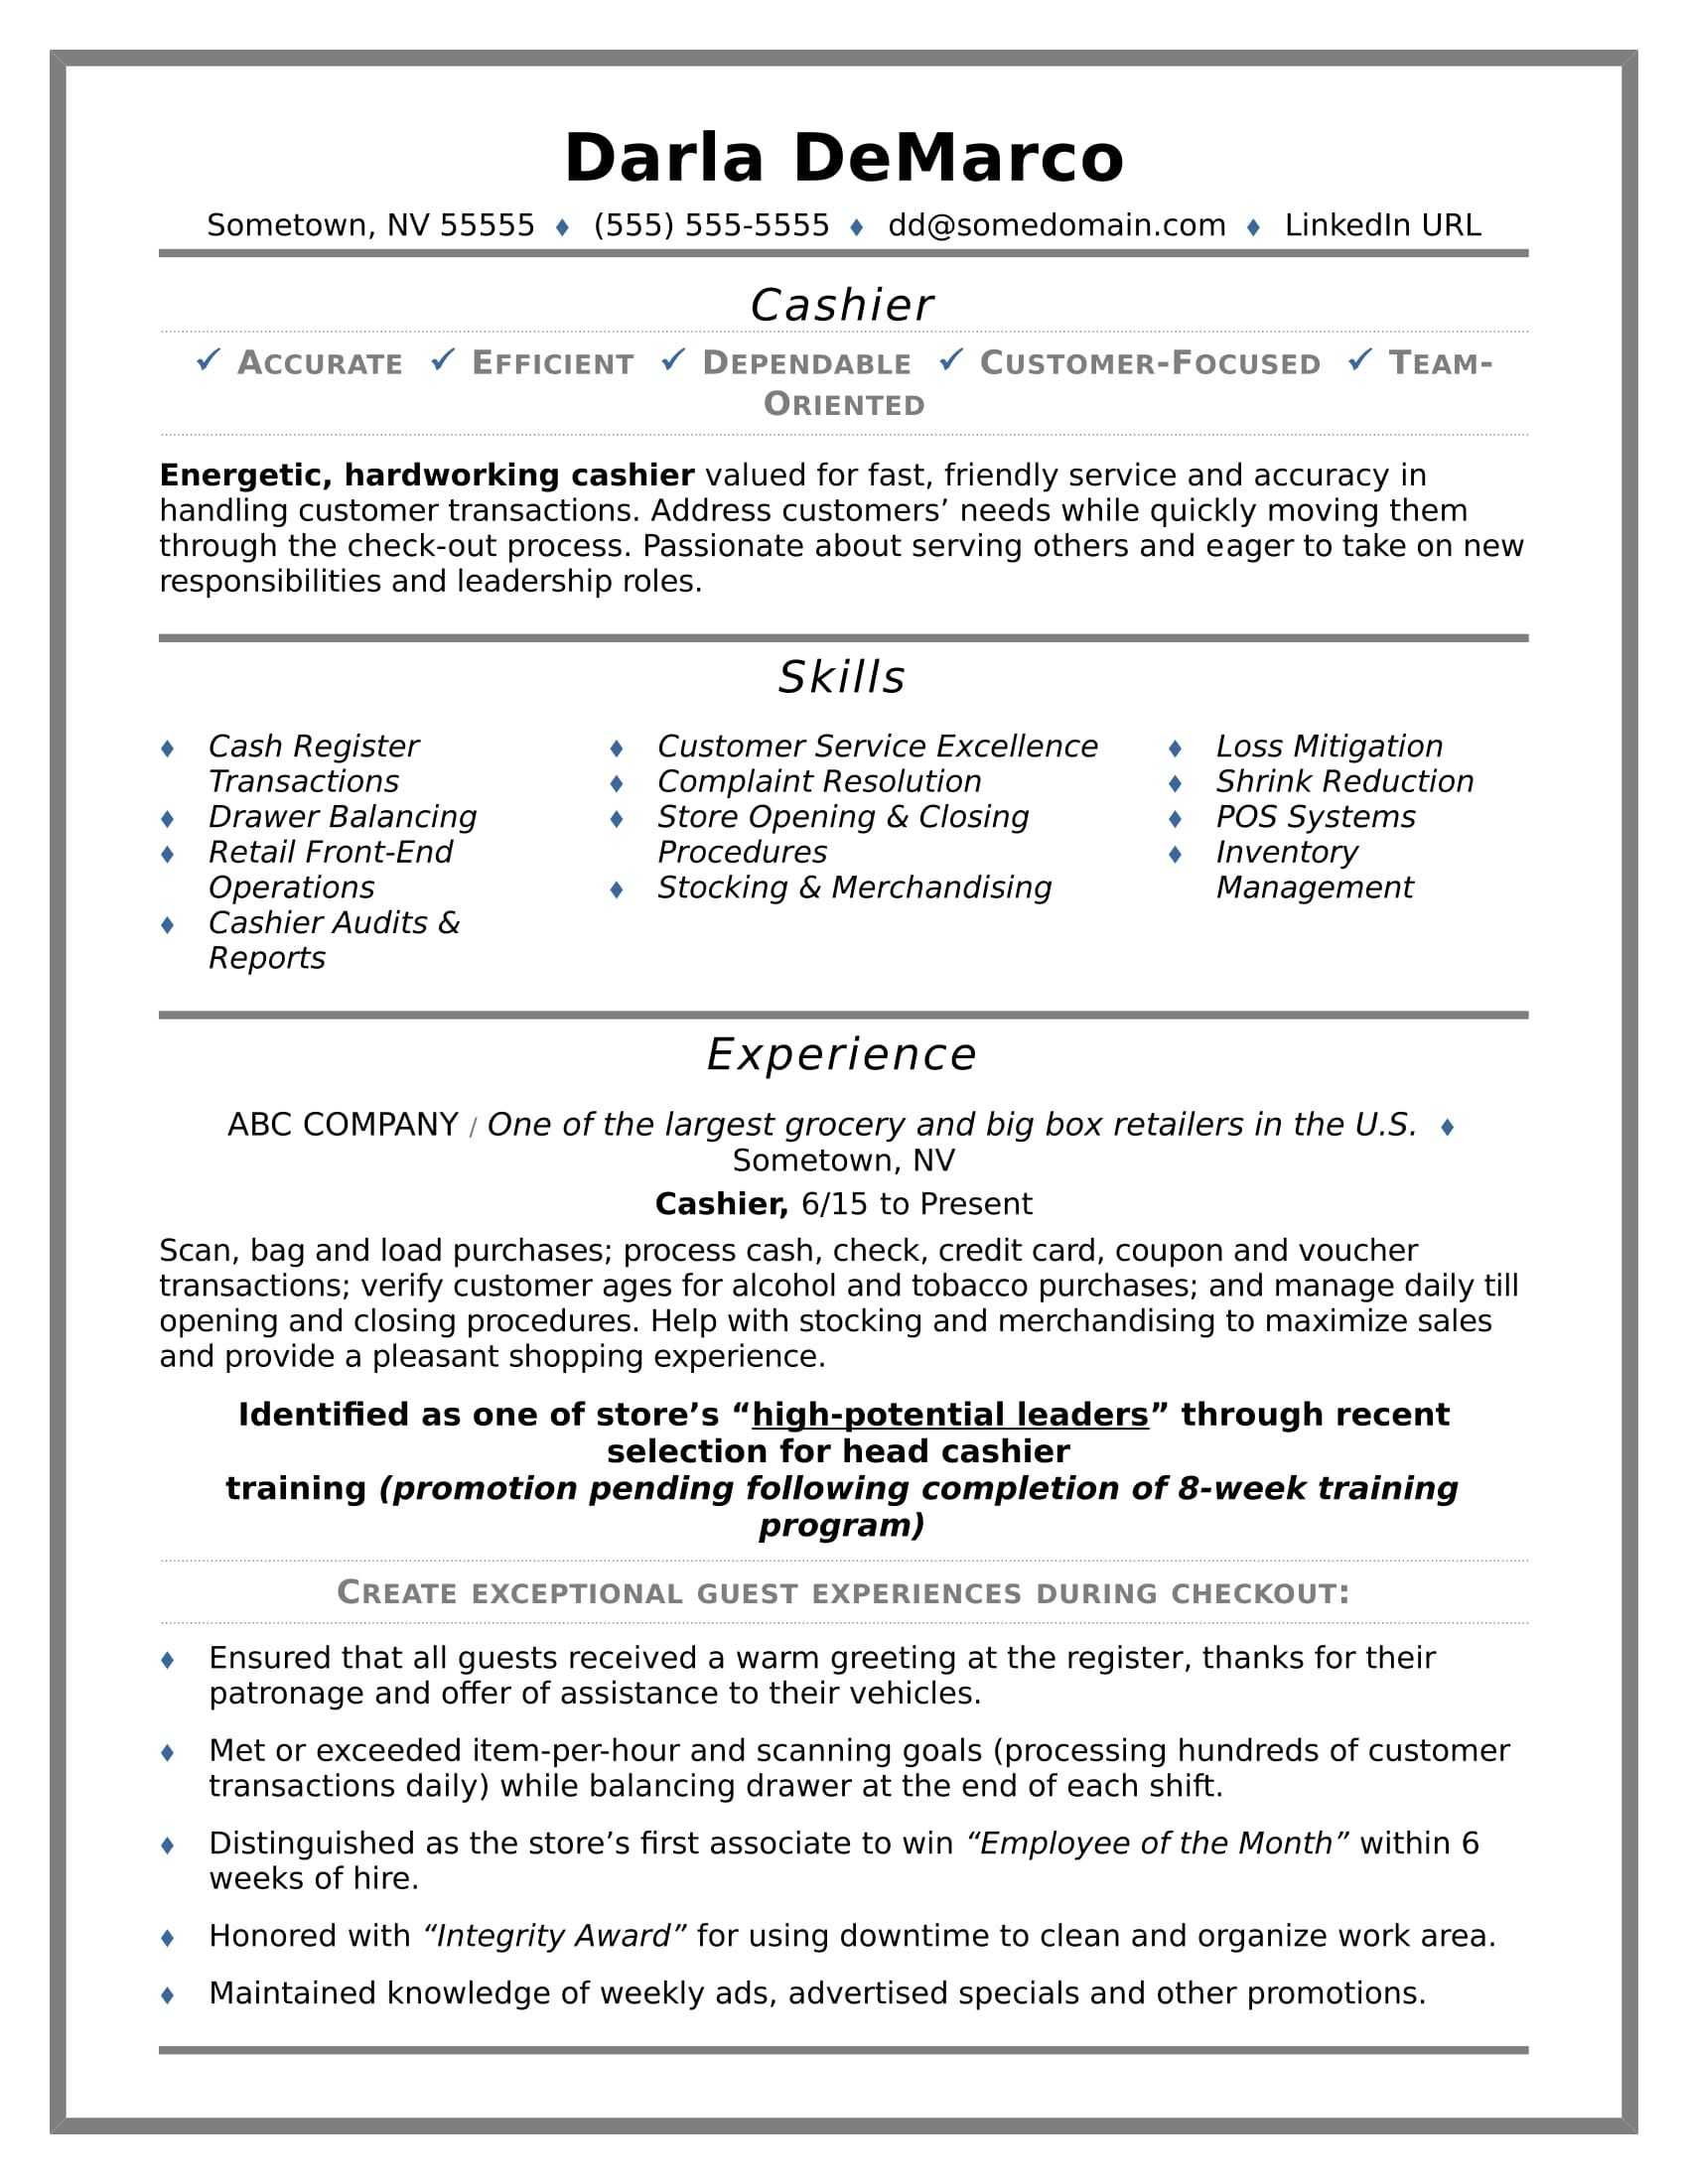 Cashier Resume Examples Cashier Resume Sample  Resume Examples Sample Resume And Career Advice